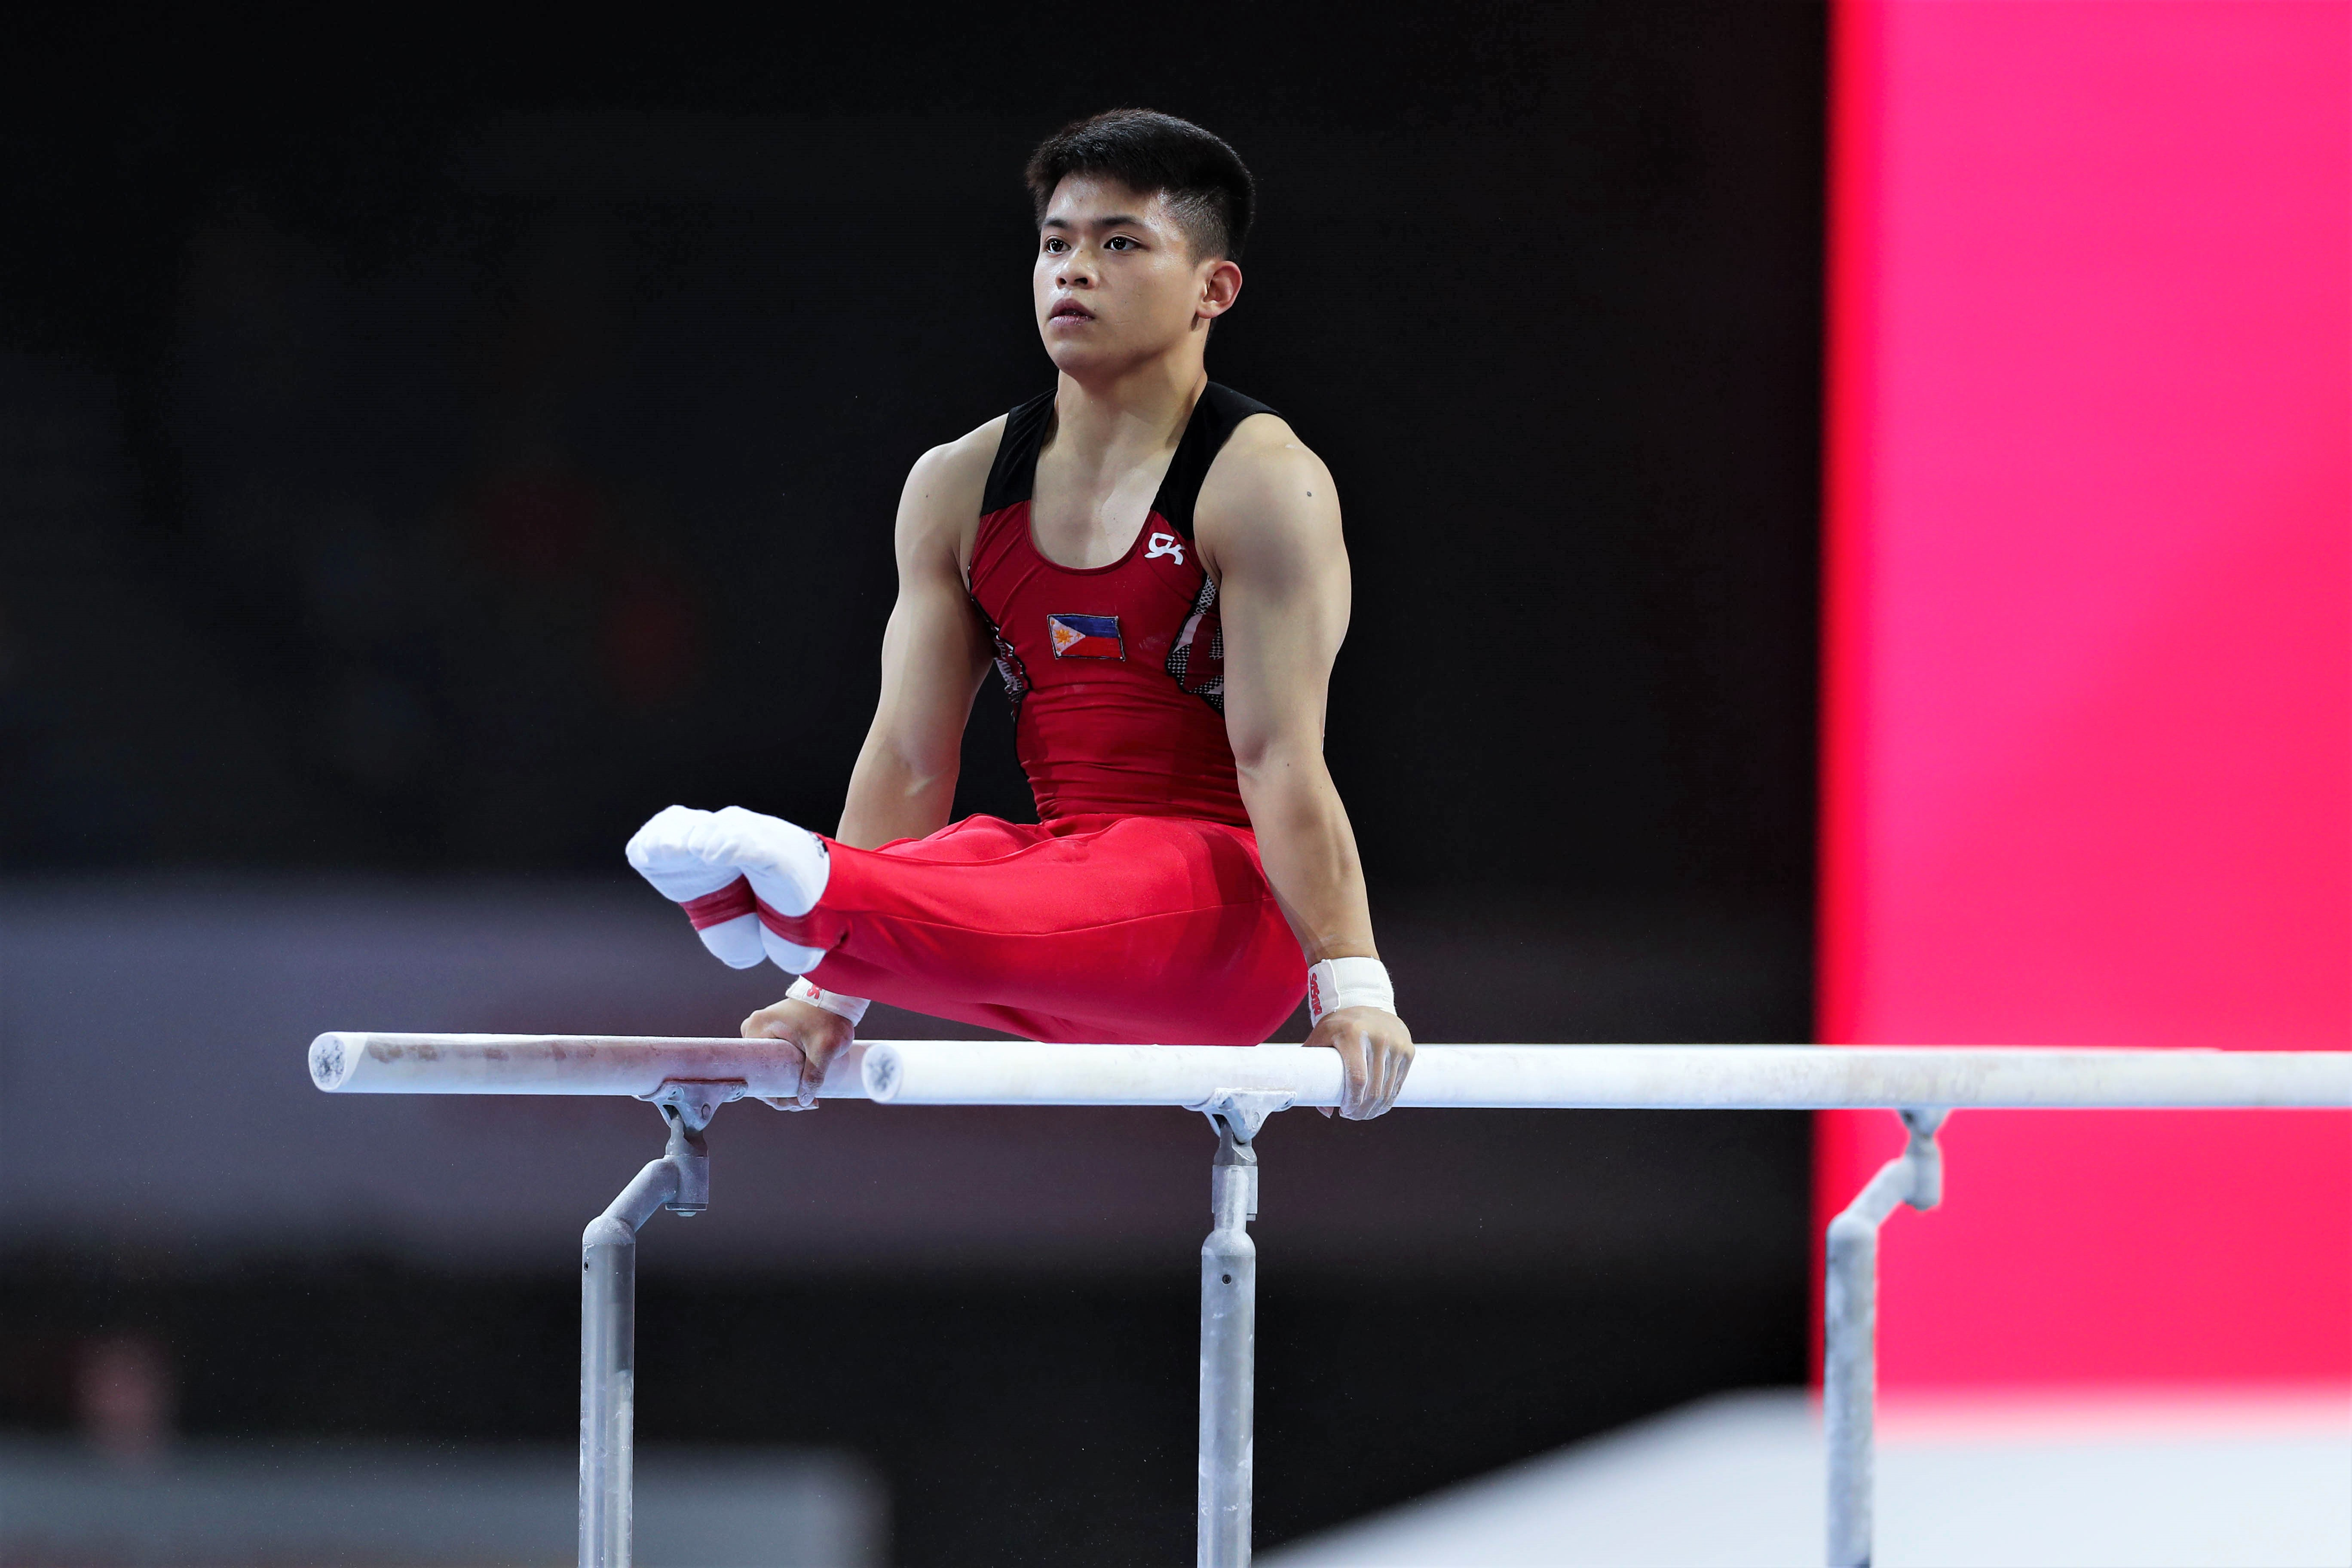 Gymnastics Current Events 2020.Fast Facts Who Is Gymnast Carlos Yulo